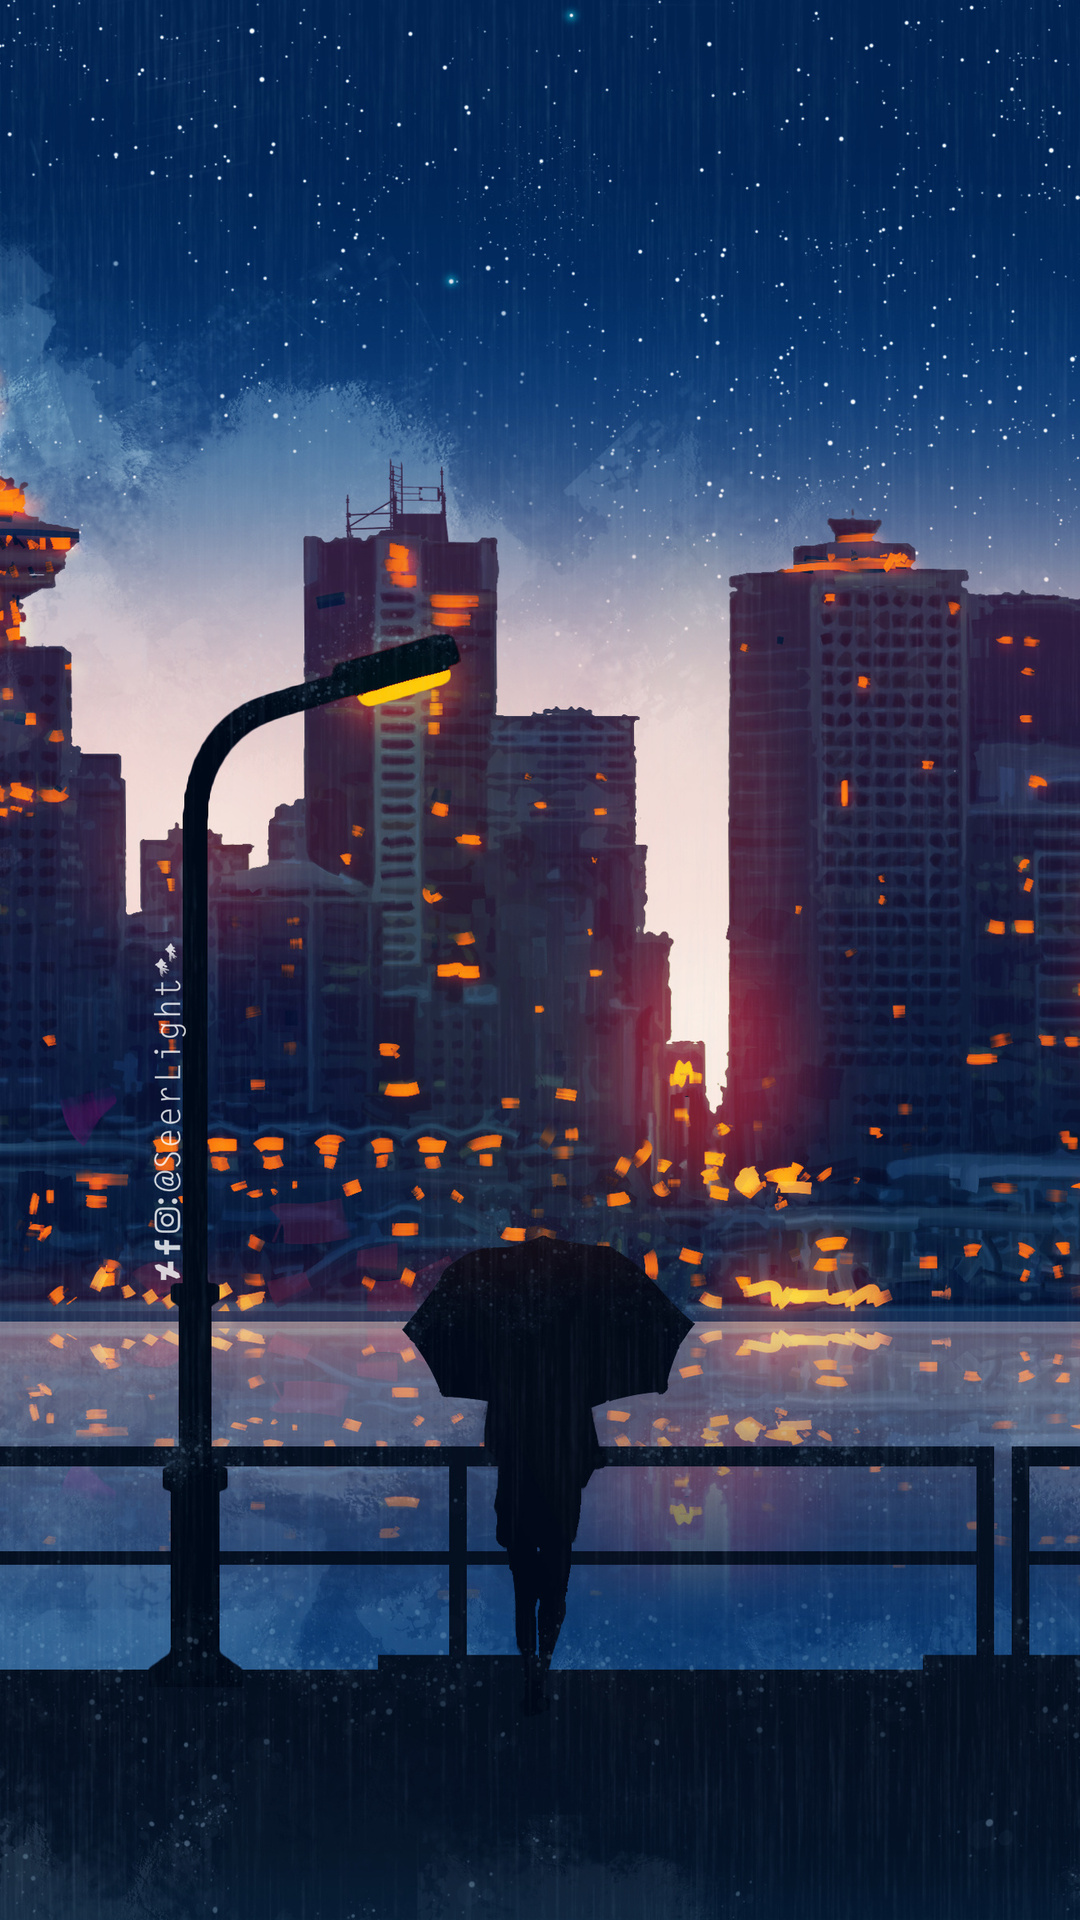 1080x1920 Anime City Lights Night Rain Umbrella Sky 5k Iphone 7 6s